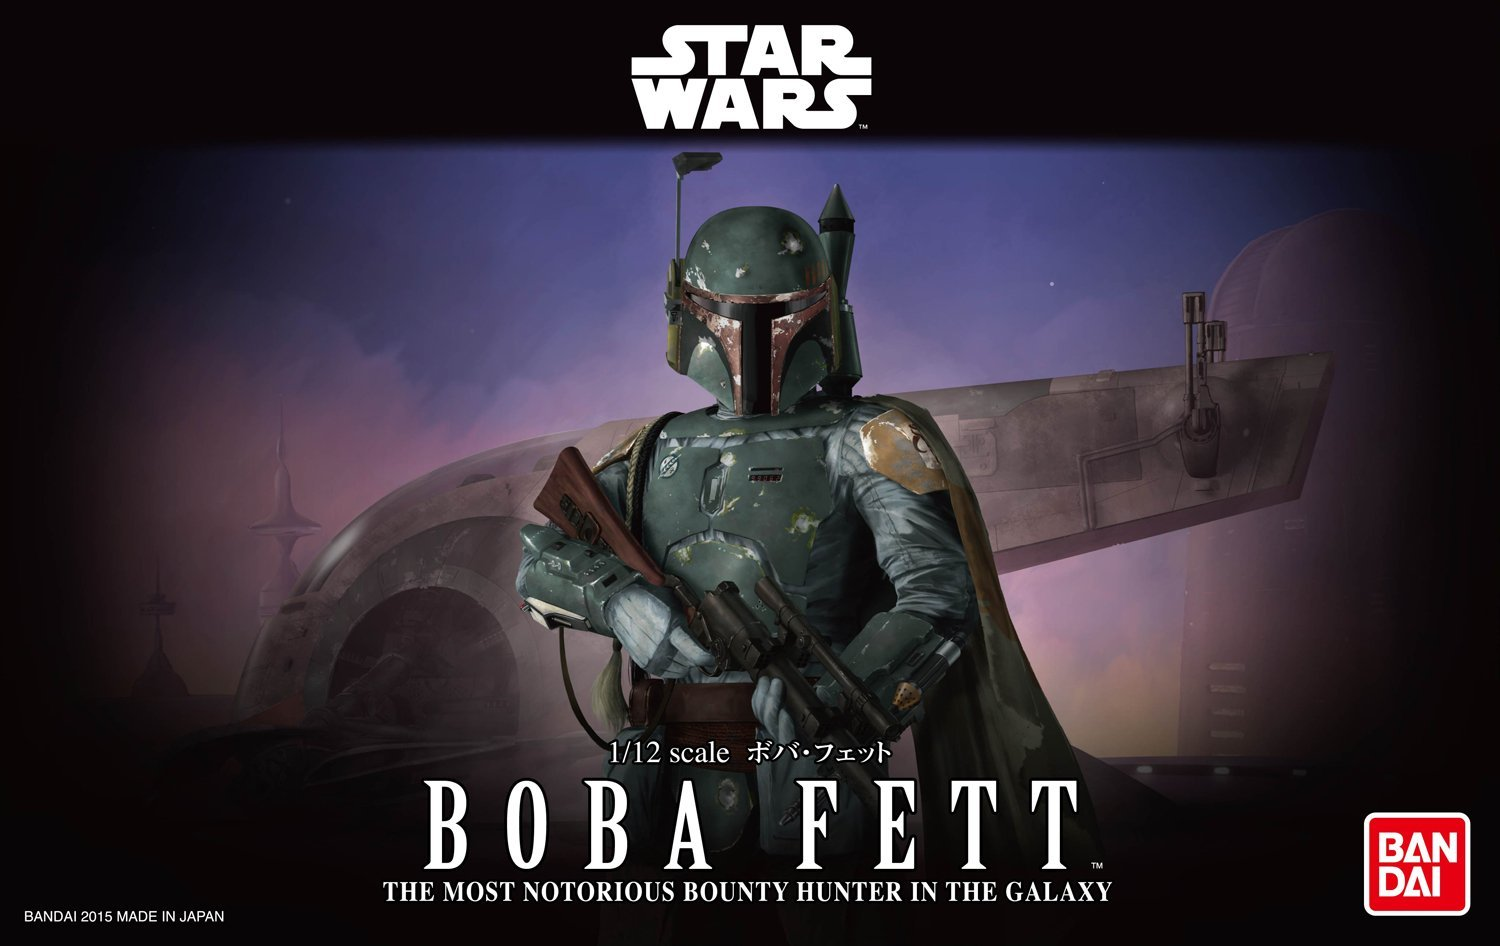 Bandai Star Wars Boba Fett 1/12 Plastic Model